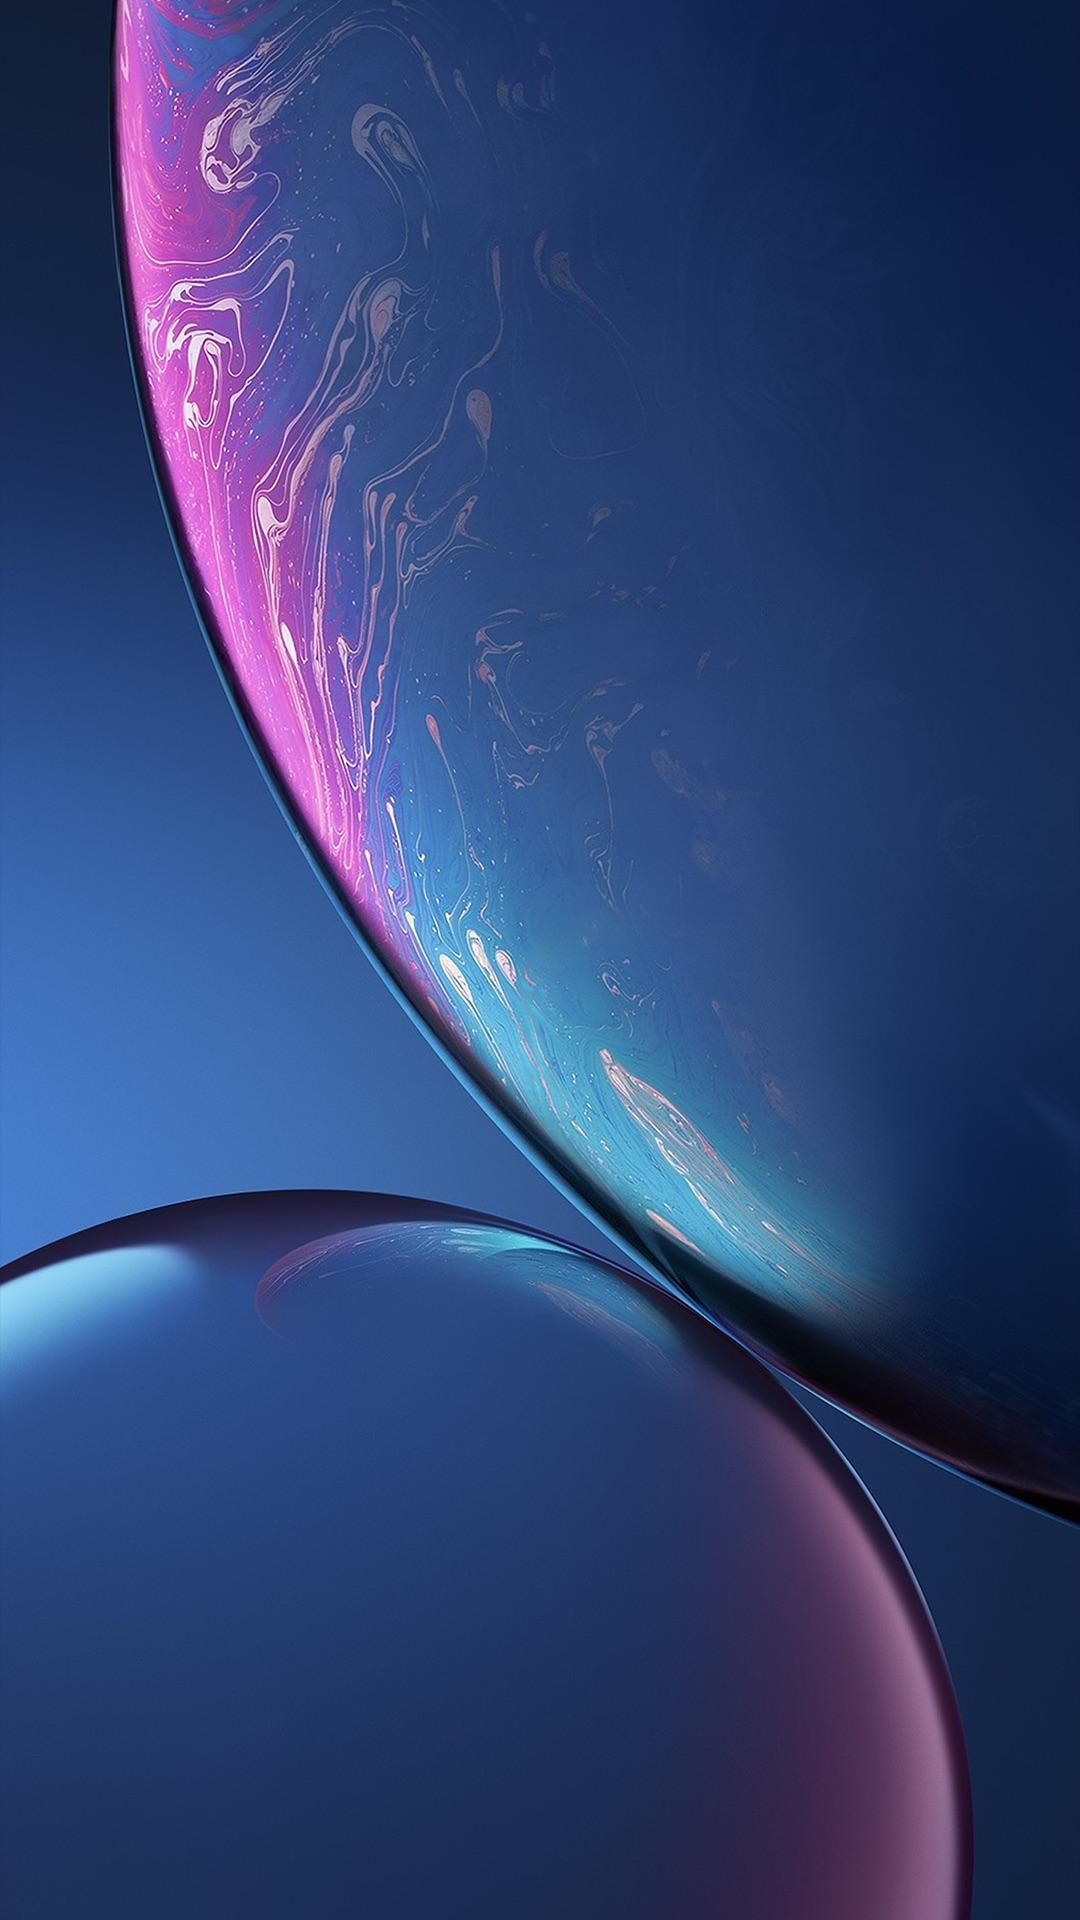 Iphone Xr Wallpaper Moving Wallpaper Iphone Live Wallpaper